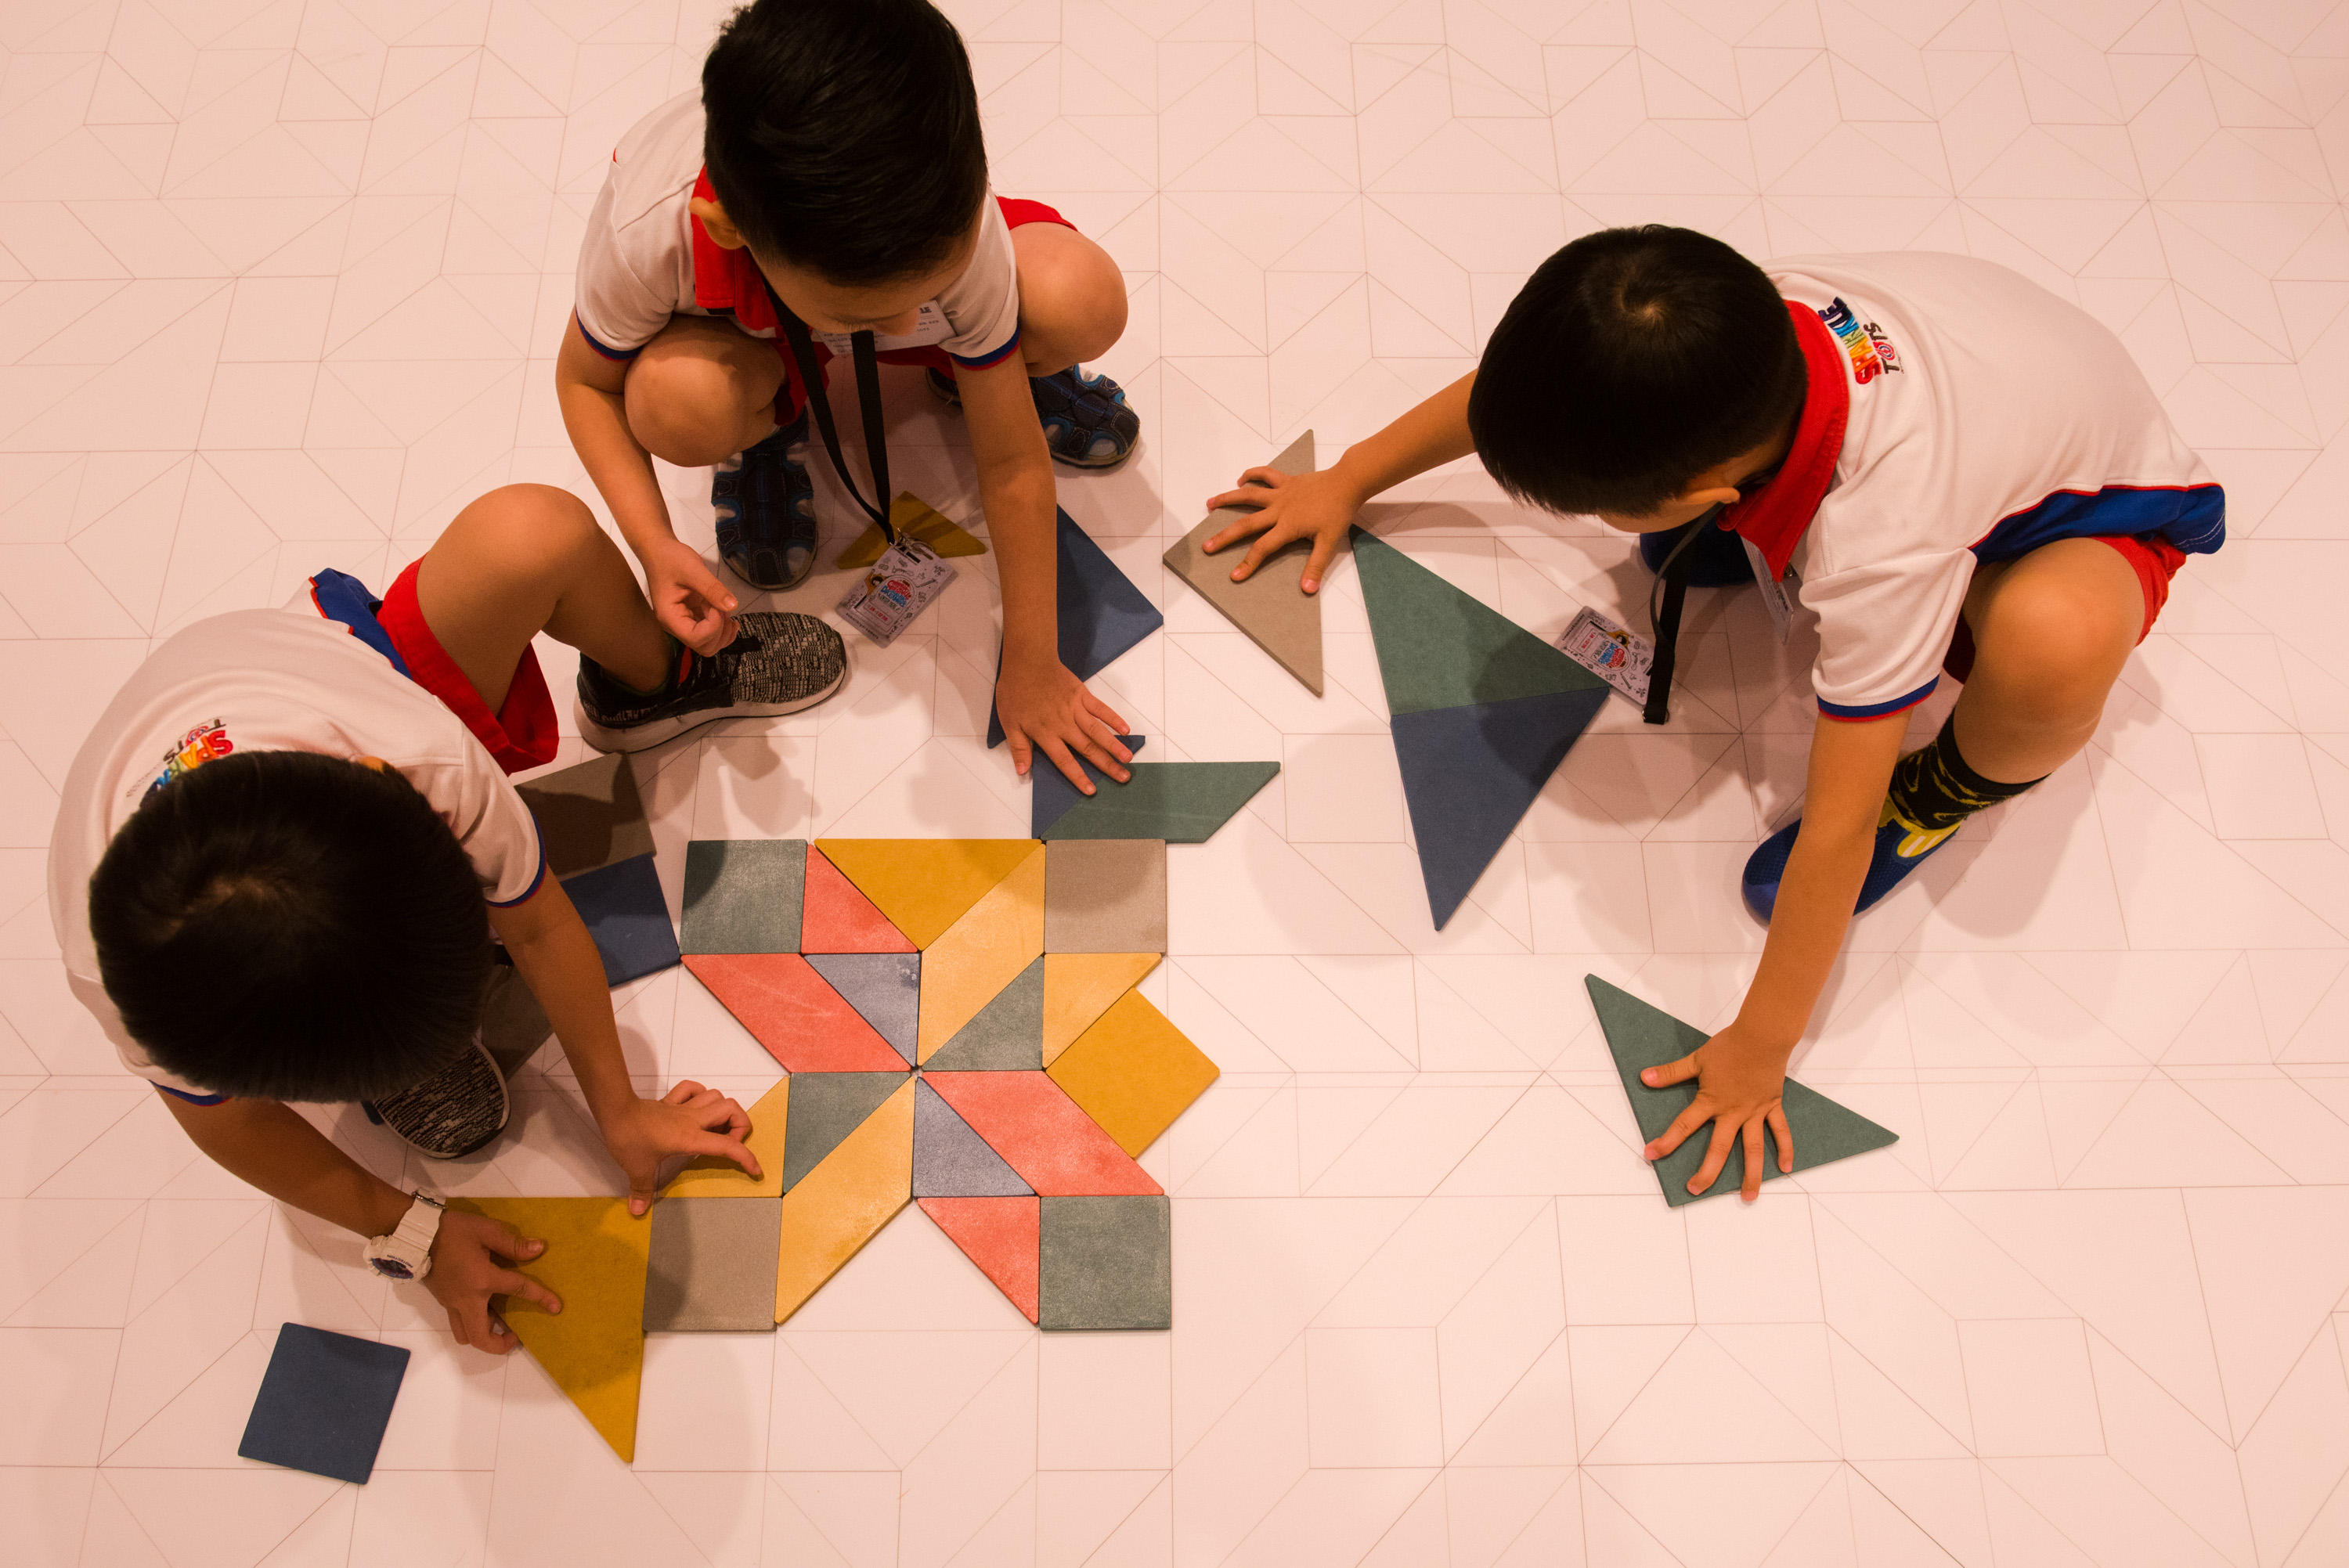 National Gallery's Children's Festival: Small Big Dreamers